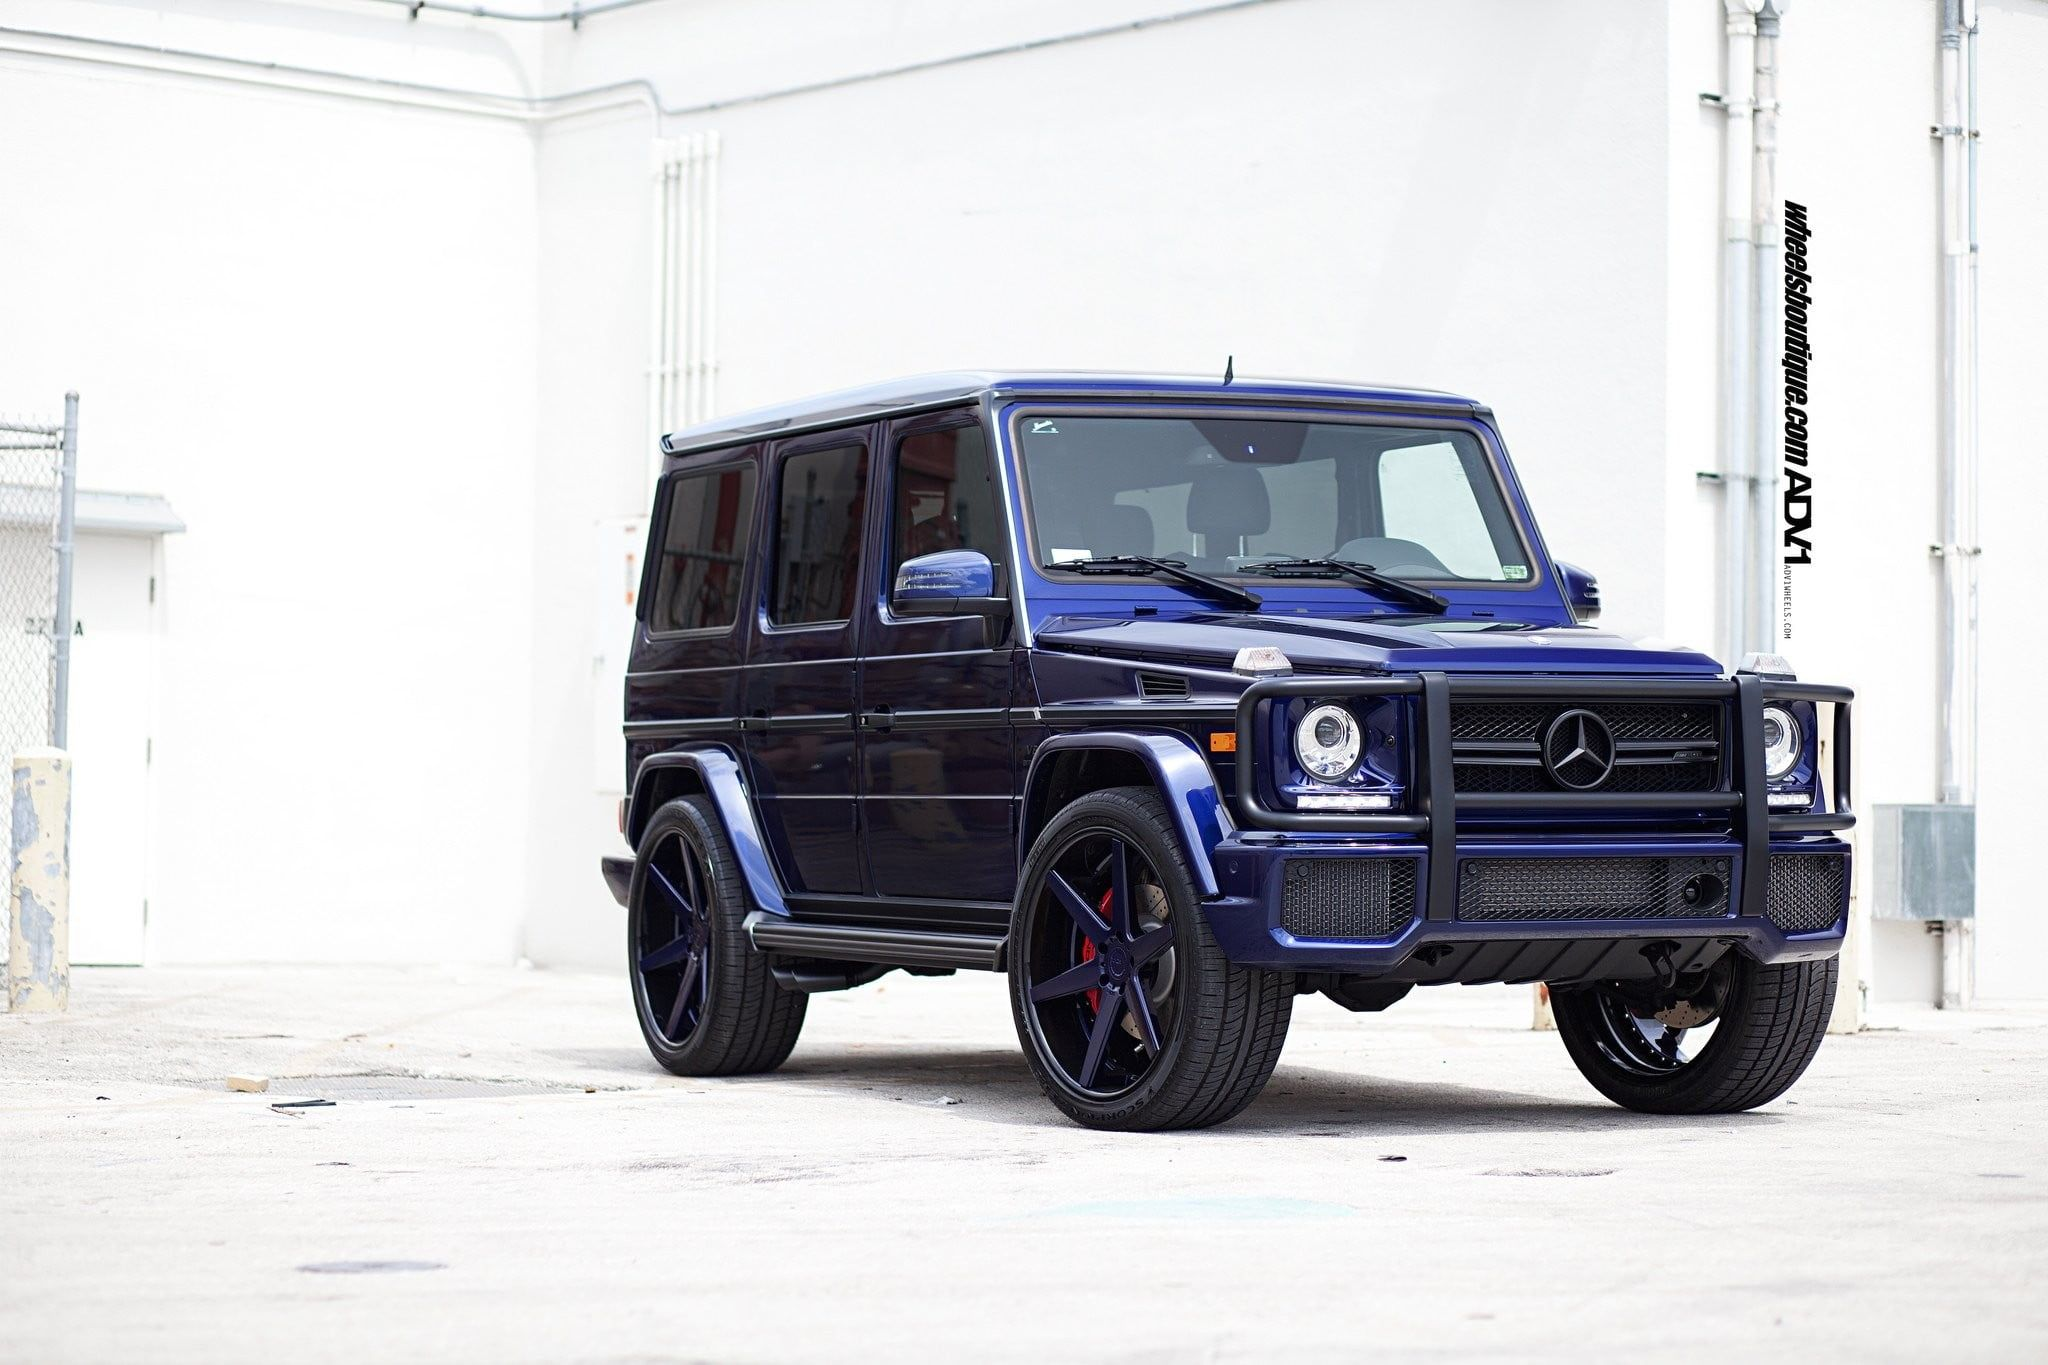 Blue And Black Jeep Wrangler Car G Class G 63 Gelandewagen